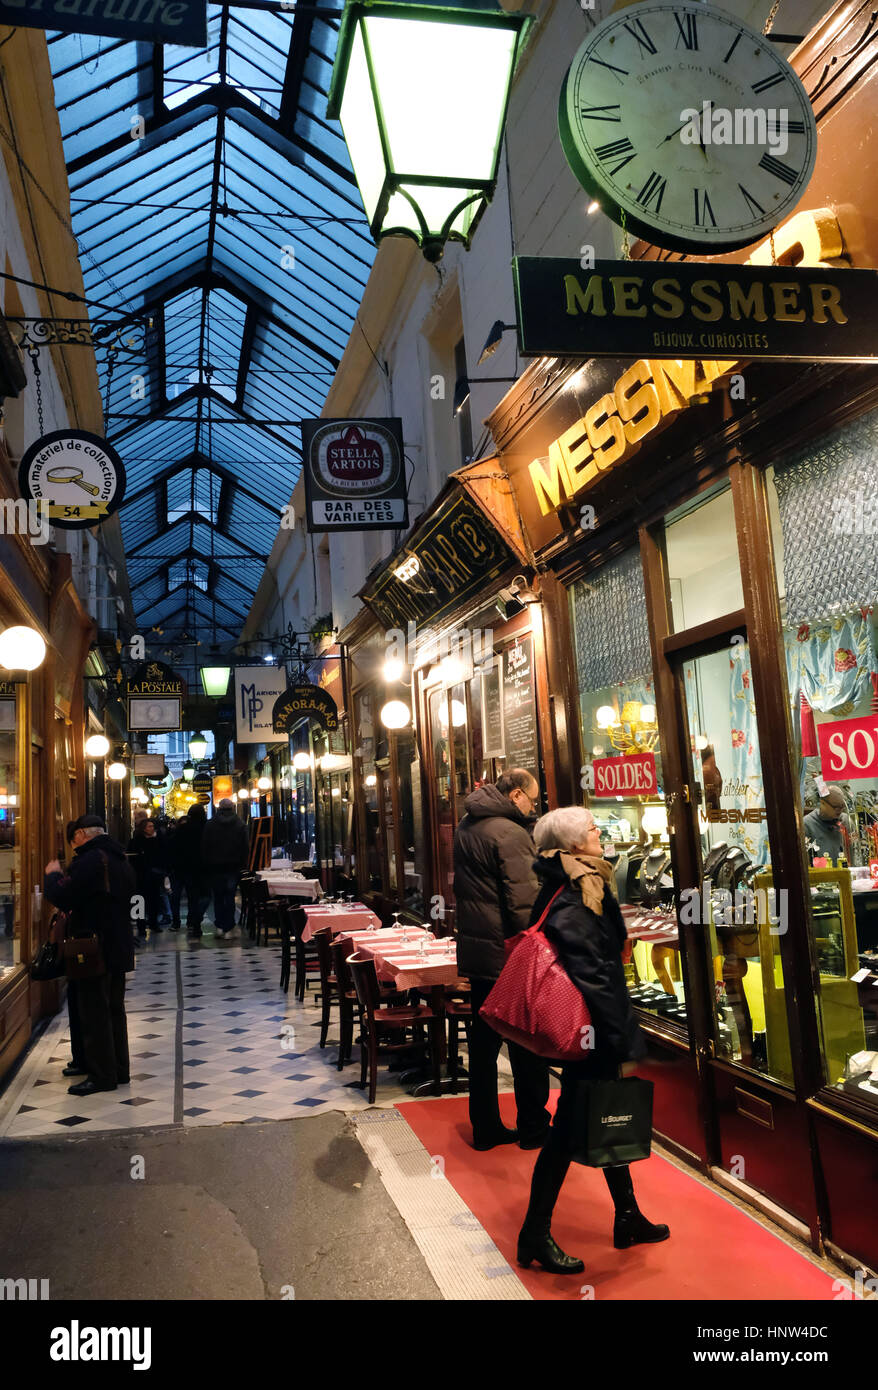 Passage Verdeau, France, Paris - Stock Image